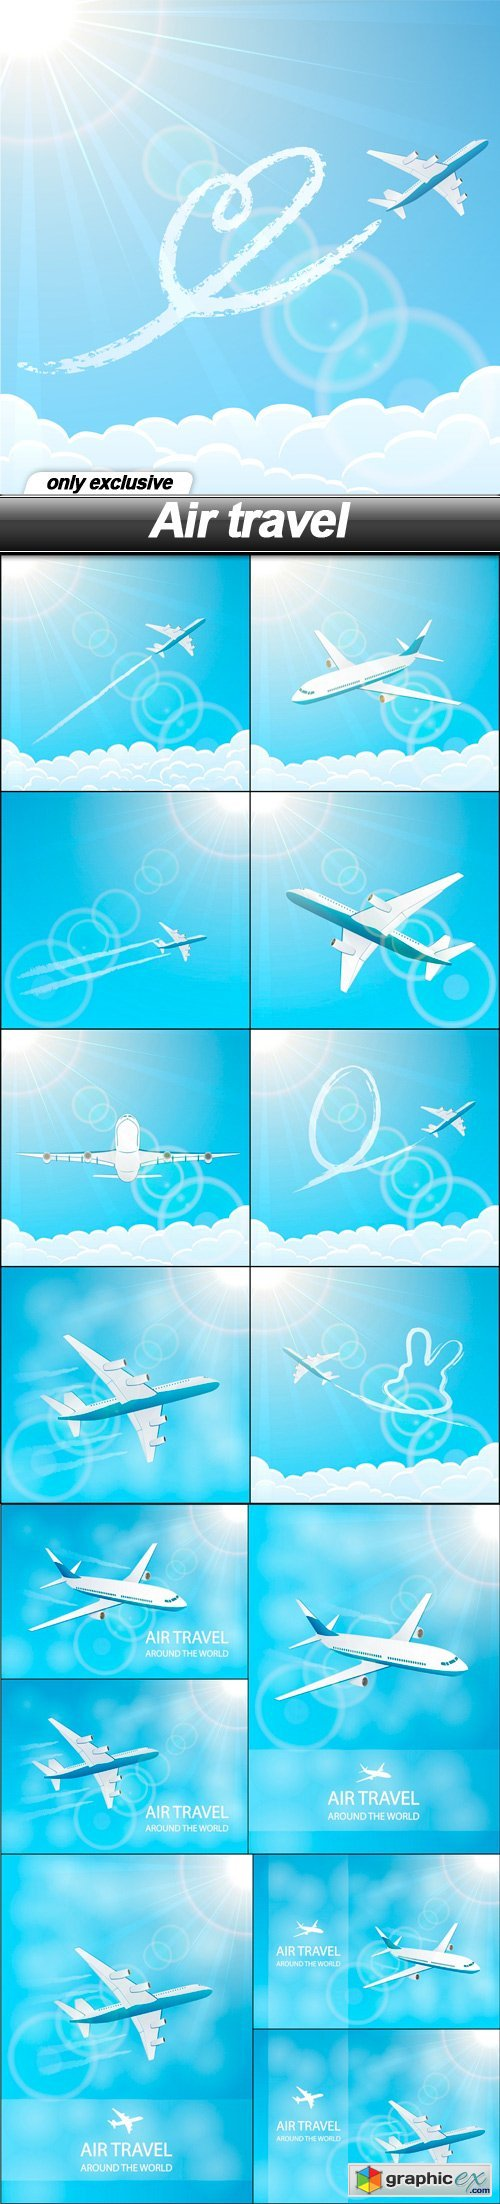 Air travel - 15 EPS